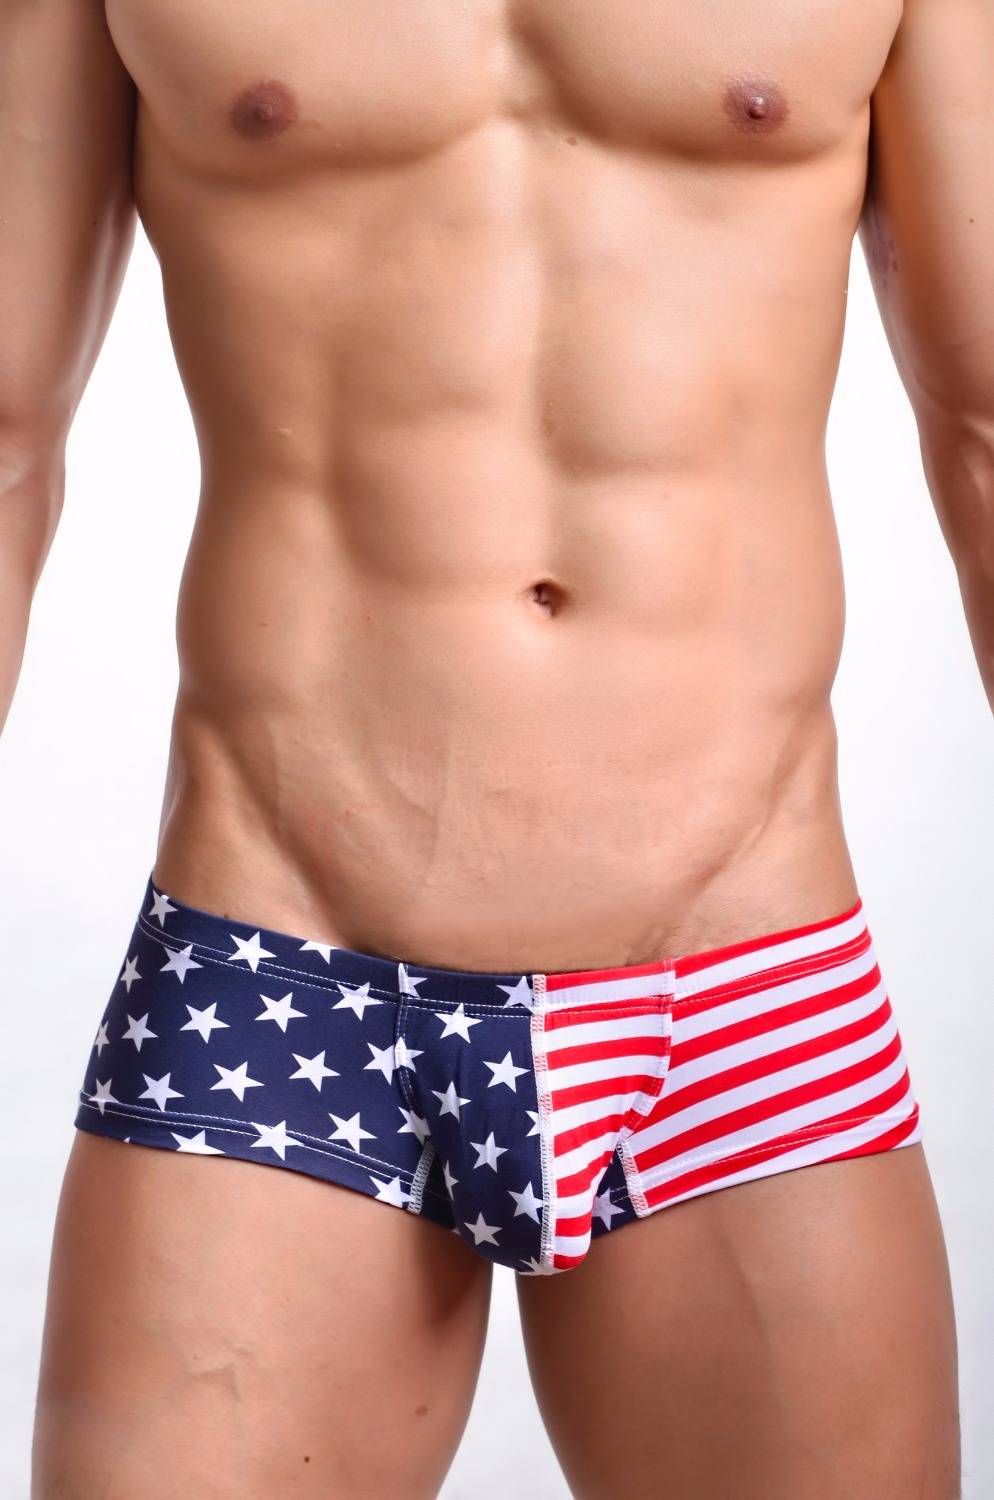 Boxer Shorts. Enjoy relaxed comfort all day long with boxer shorts. Boxers are a longtime-favorite men's underwear choice for everyday wear. Many men also wear boxers and an undershirt to bed as super comfortable pajamas.